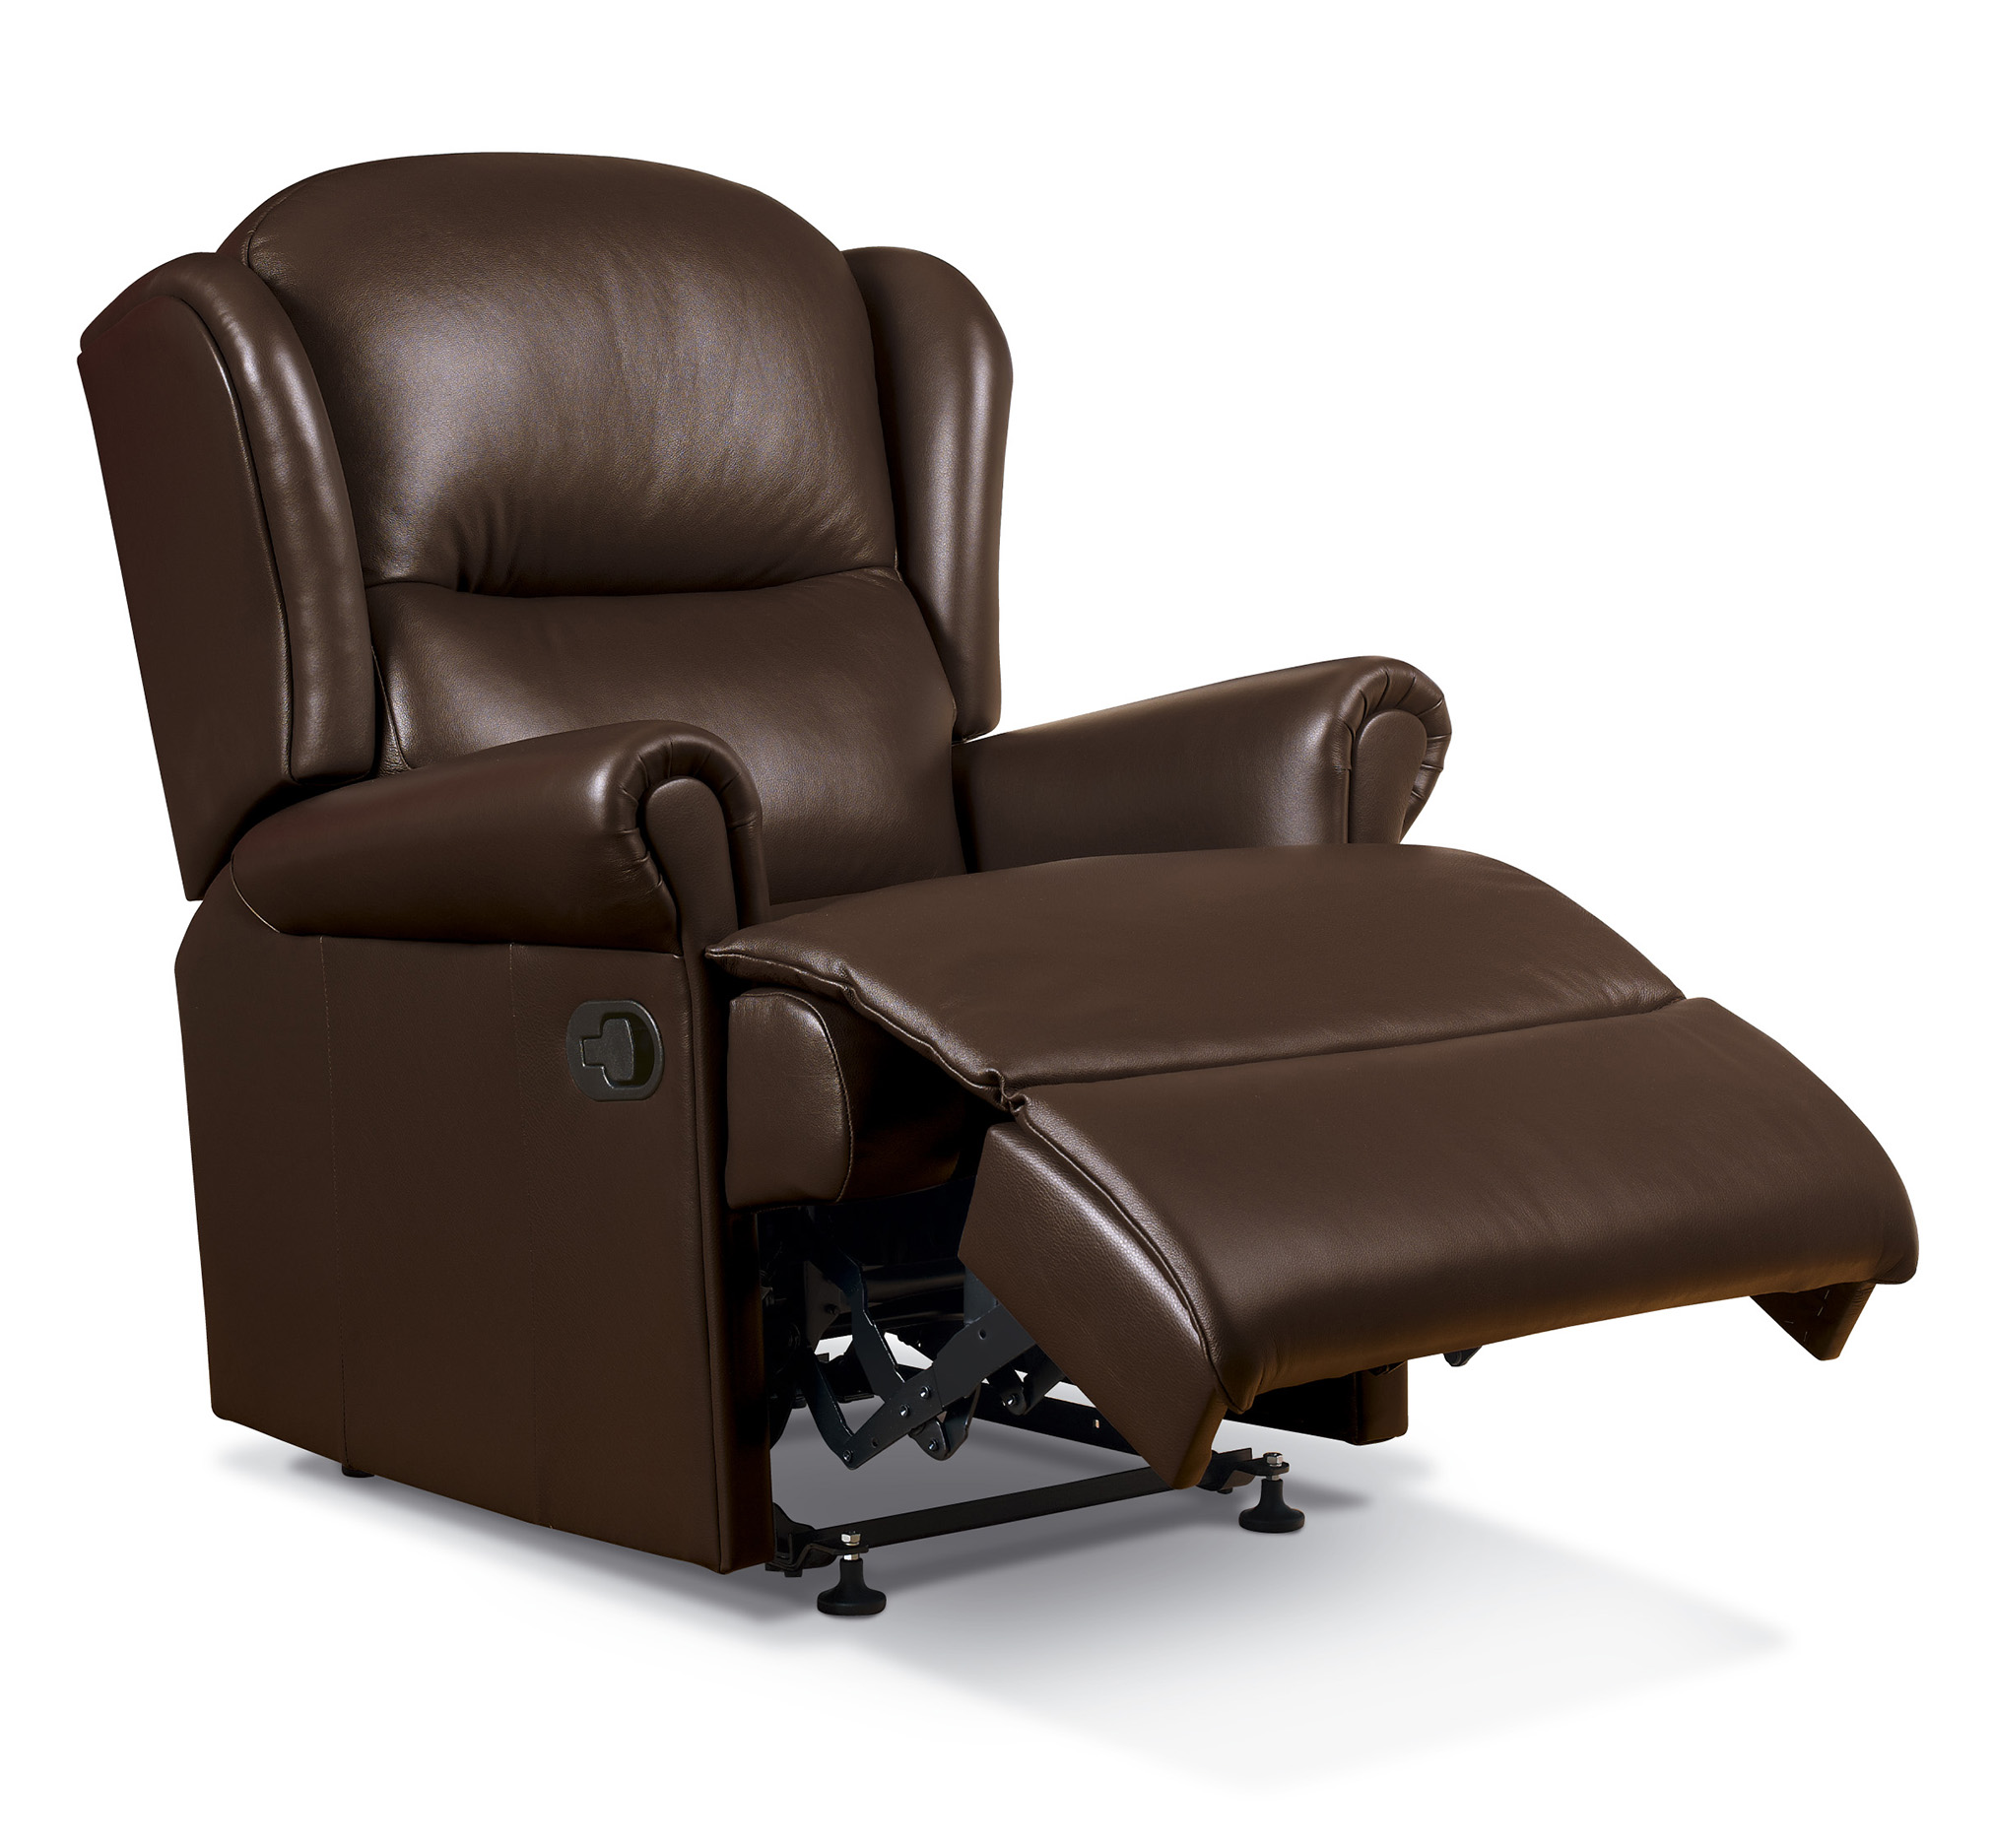 Small Recliner Chair Leather